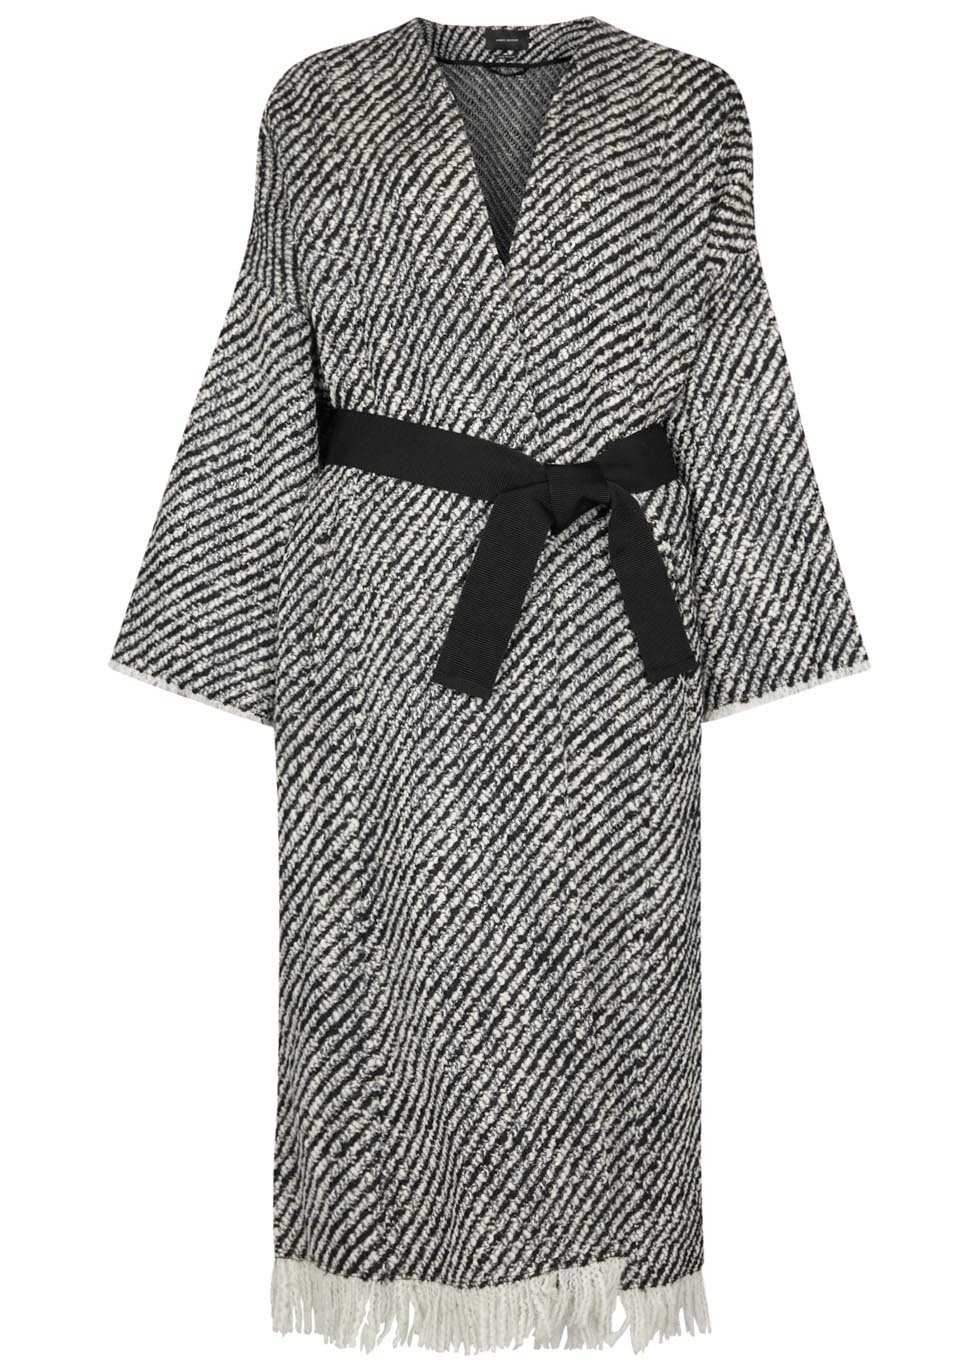 Iban Bouclé Tweed Coat - pattern: plain; collar: round collar/collarless; fit: loose; style: wrap around; length: calf length; predominant colour: mid grey; secondary colour: black; occasions: casual; fibres: wool - mix; waist detail: belted waist/tie at waist/drawstring; sleeve length: 3/4 length; sleeve style: standard; collar break: low/open; pattern type: fabric; texture group: woven bulky/heavy; embellishment: fringing; season: s/s 2016; wardrobe: highlight